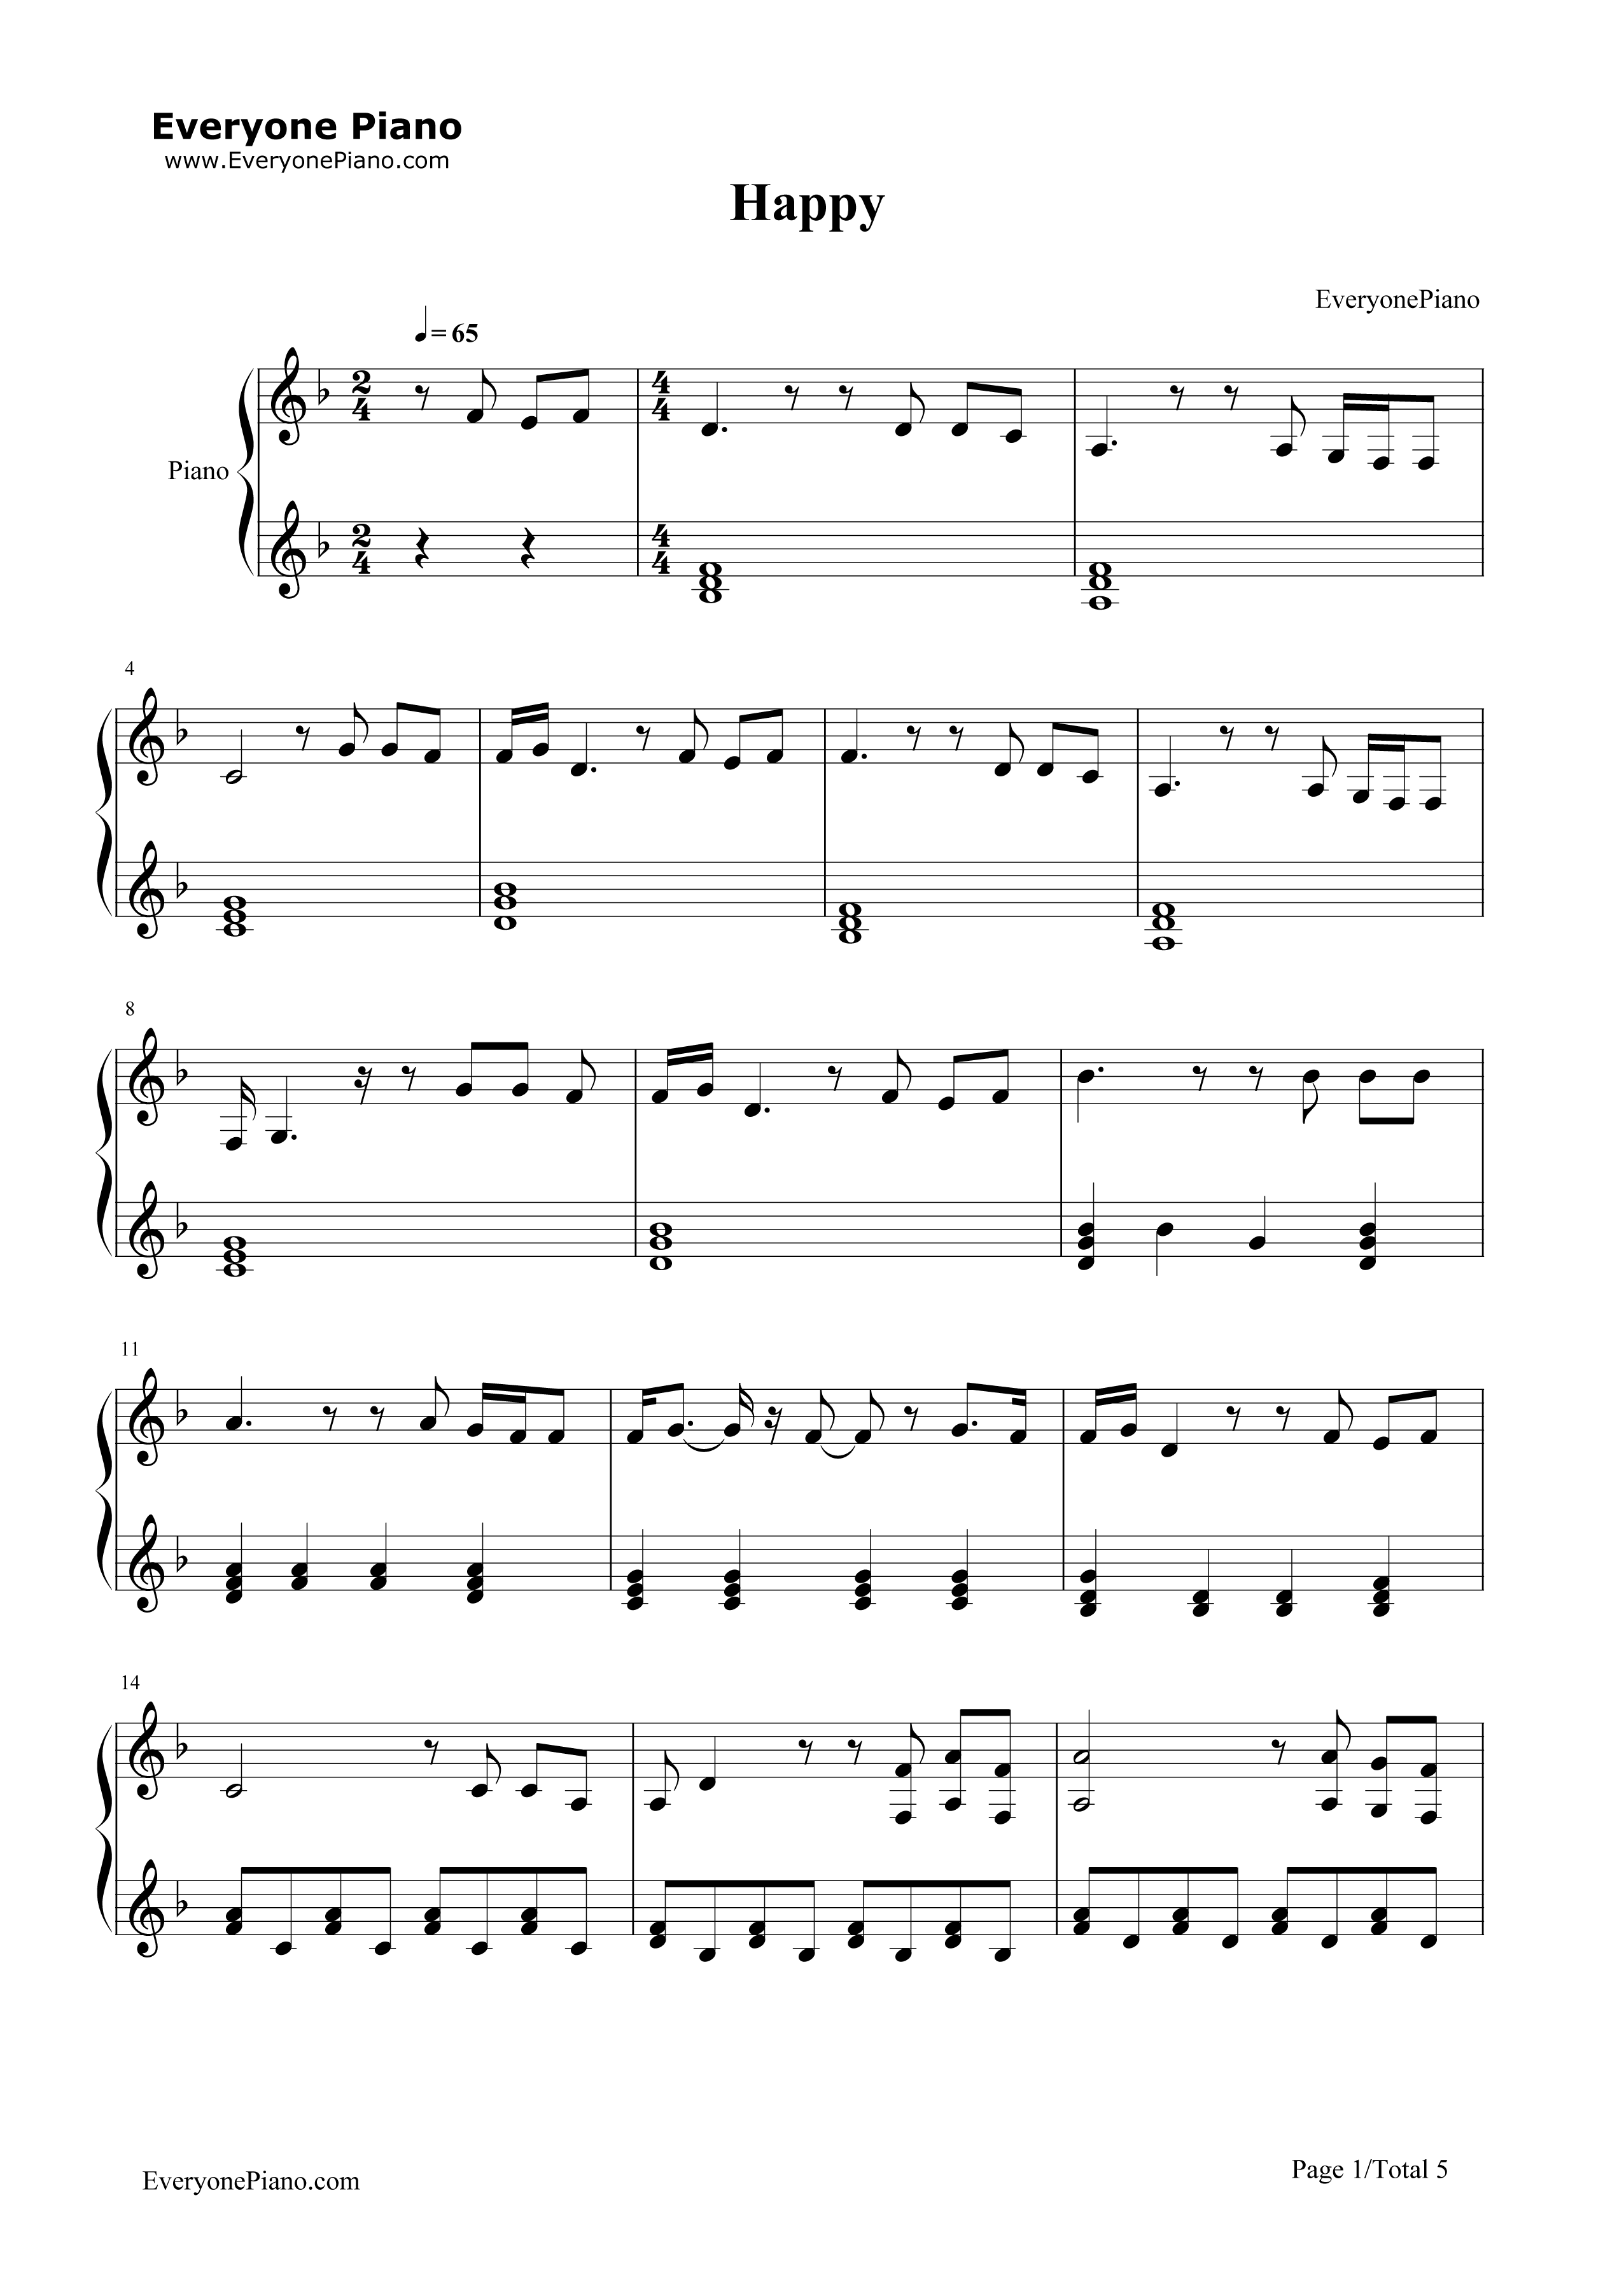 Happy marina and the diamonds free piano sheet music piano chords happy marina and the diamonds stave preview 1 hexwebz Gallery